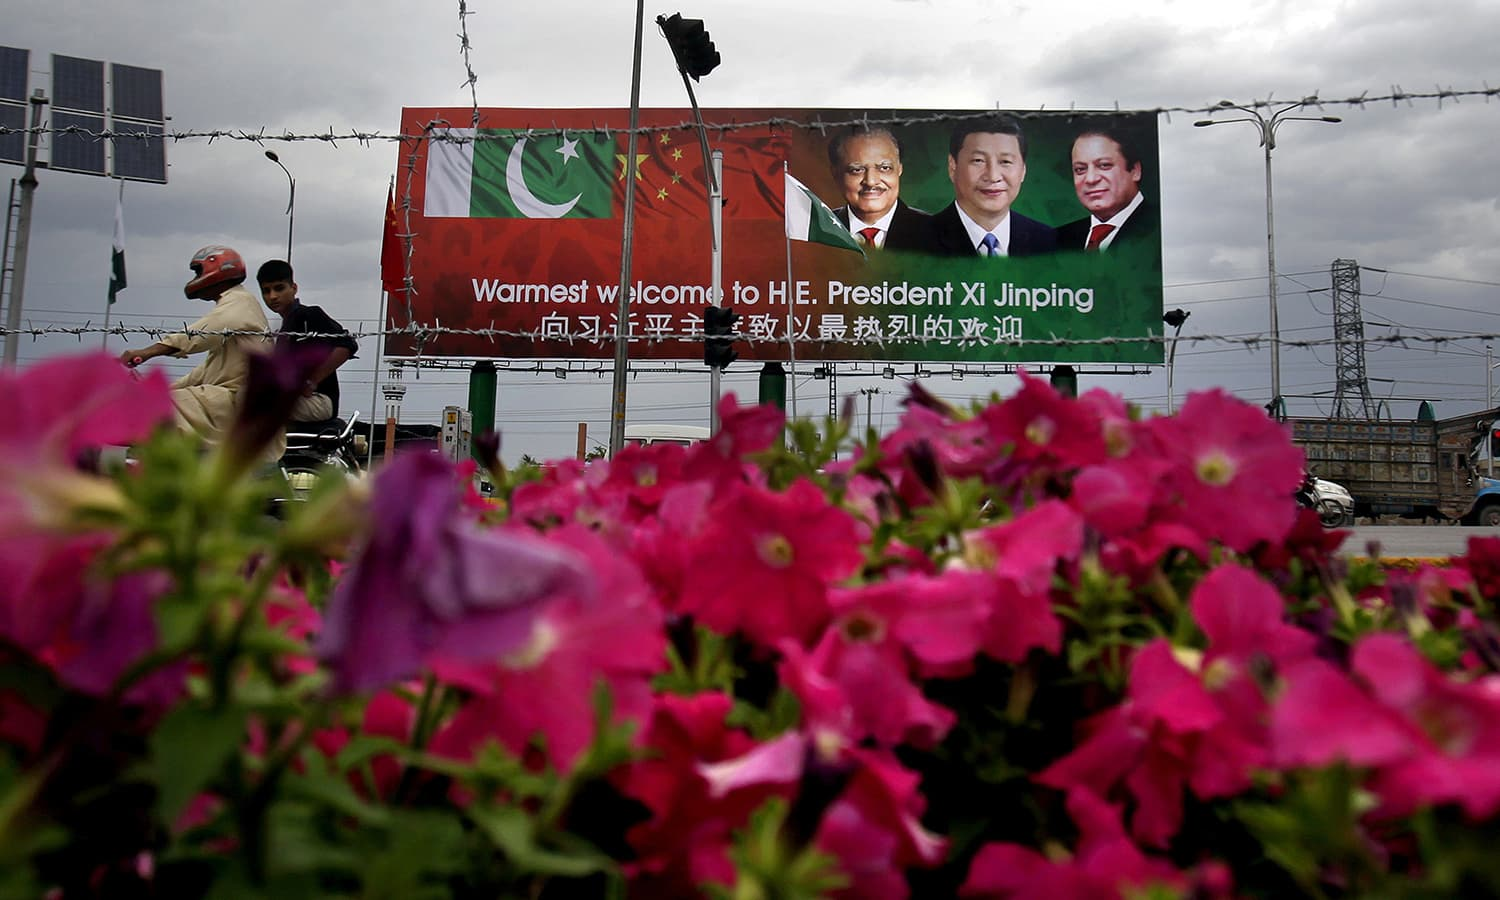 A motorcyclist rides past a billboard showing pictures of Chinese President Xi Jinping, center, with Pakistan's President Mamnoon Hussain, left, and Prime Minister Nawaz Sharif welcoming Xi Jingpin to Islamabad.— AP